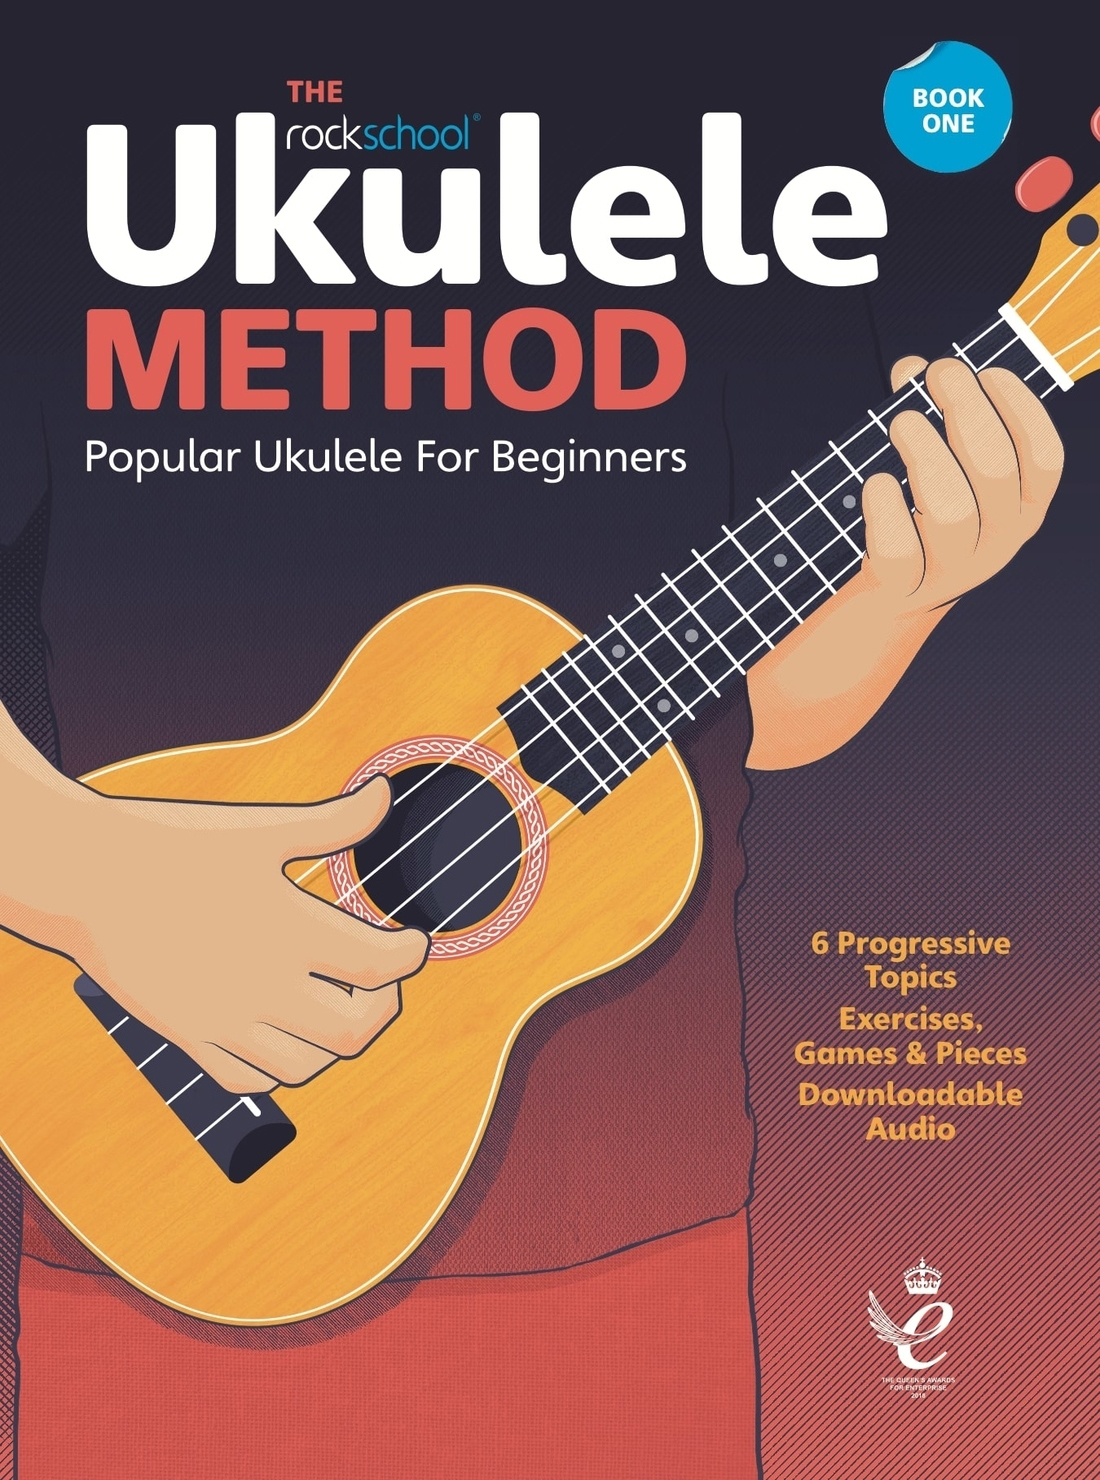 Ashley Hards Jono Harrison Tim Bennett-Hart: Rockschool Ukulele Method Book 1: